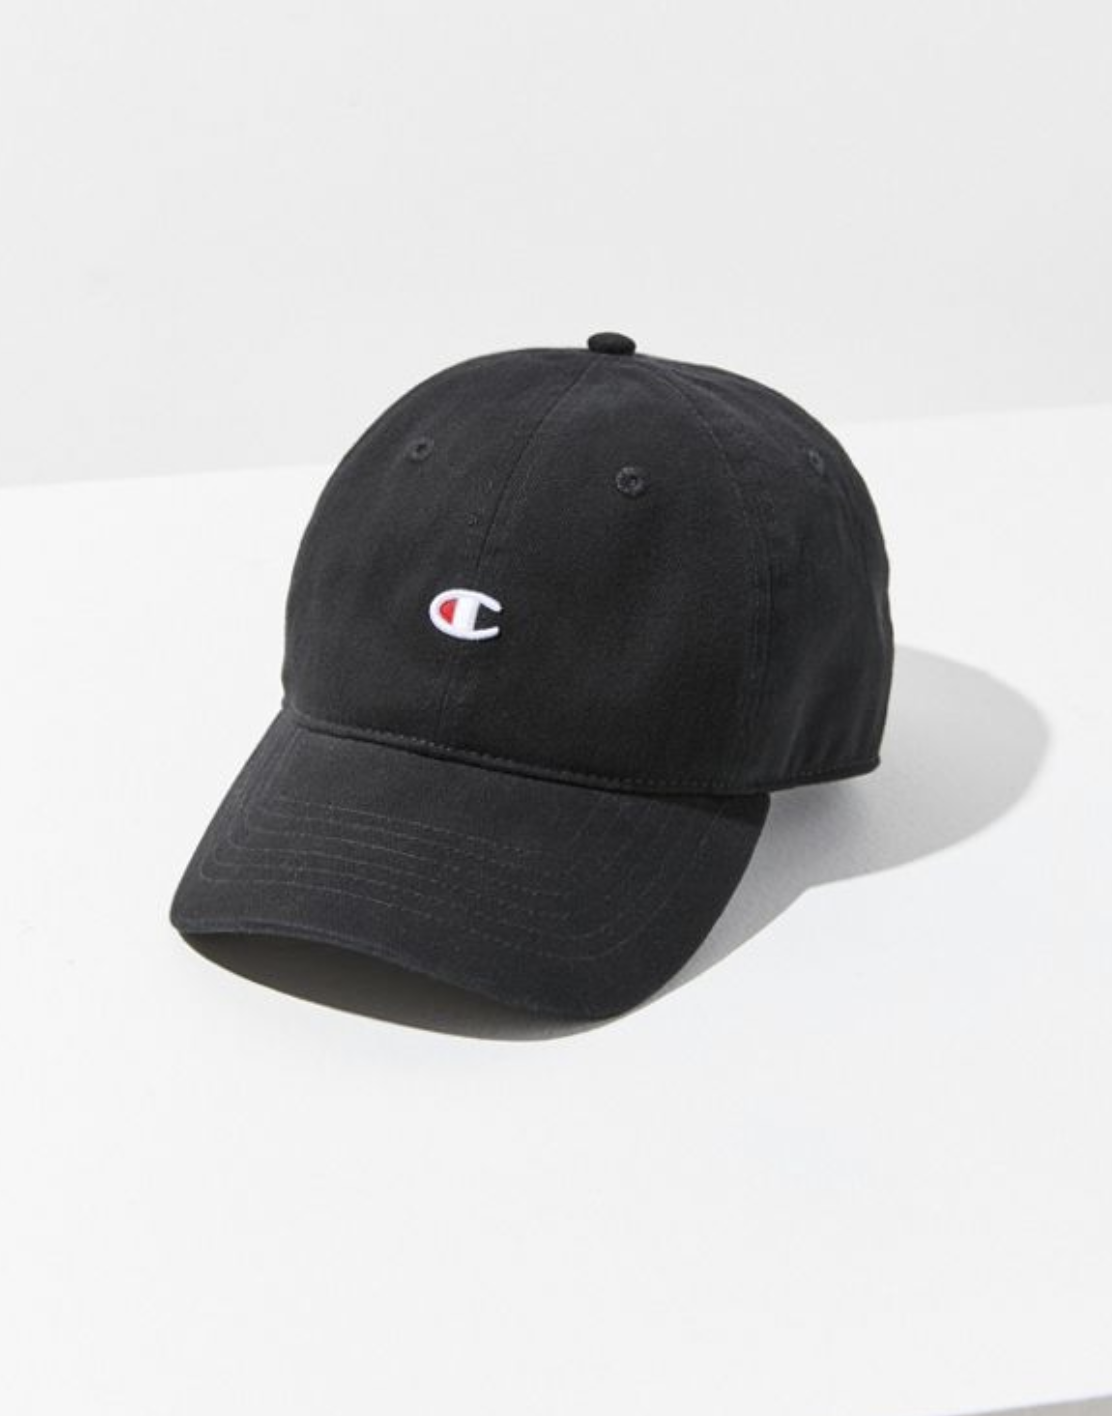 Champion UO Exclusive Washed Twill Baseball Hat - $29 - Classic and goes with everything.